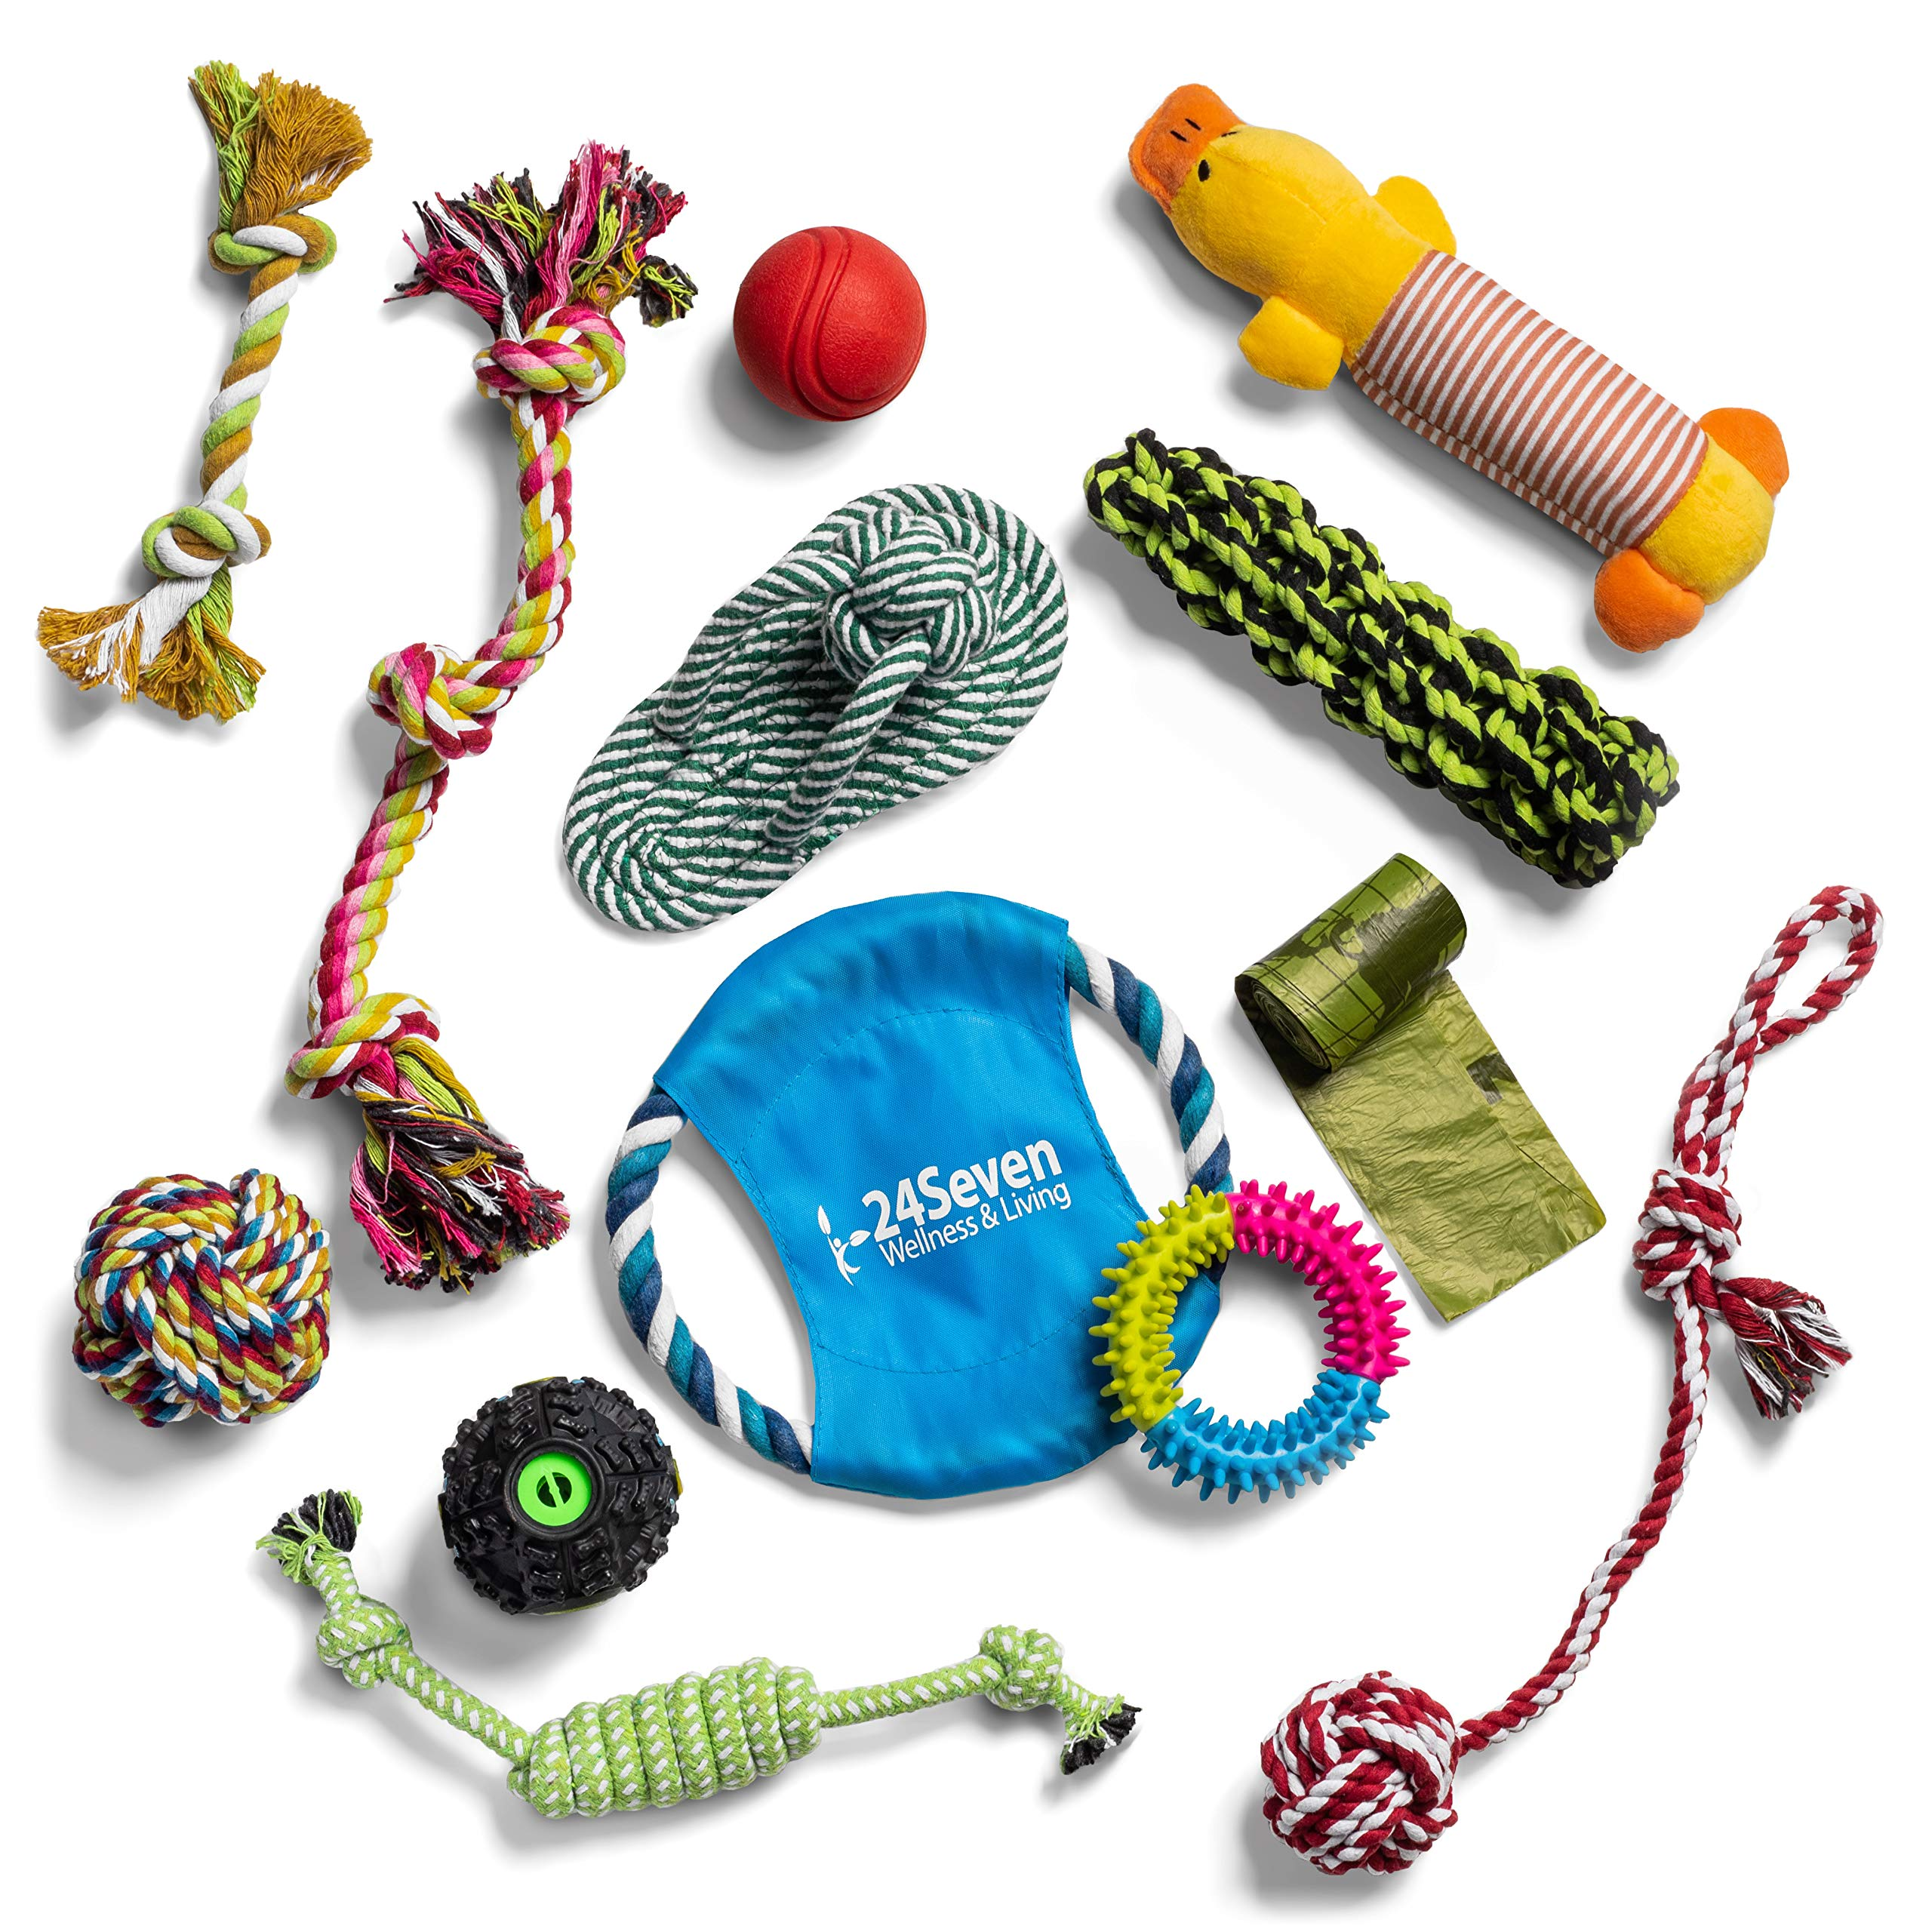 24Seven Wellness and Living Pack of 12 Rope Dog Toys for Aggressive Chewers Ideal Teething Set for Puppies and Big Dogs Who Love to Chew - Indestructible Ball, Tug Toy, Frisbee and More